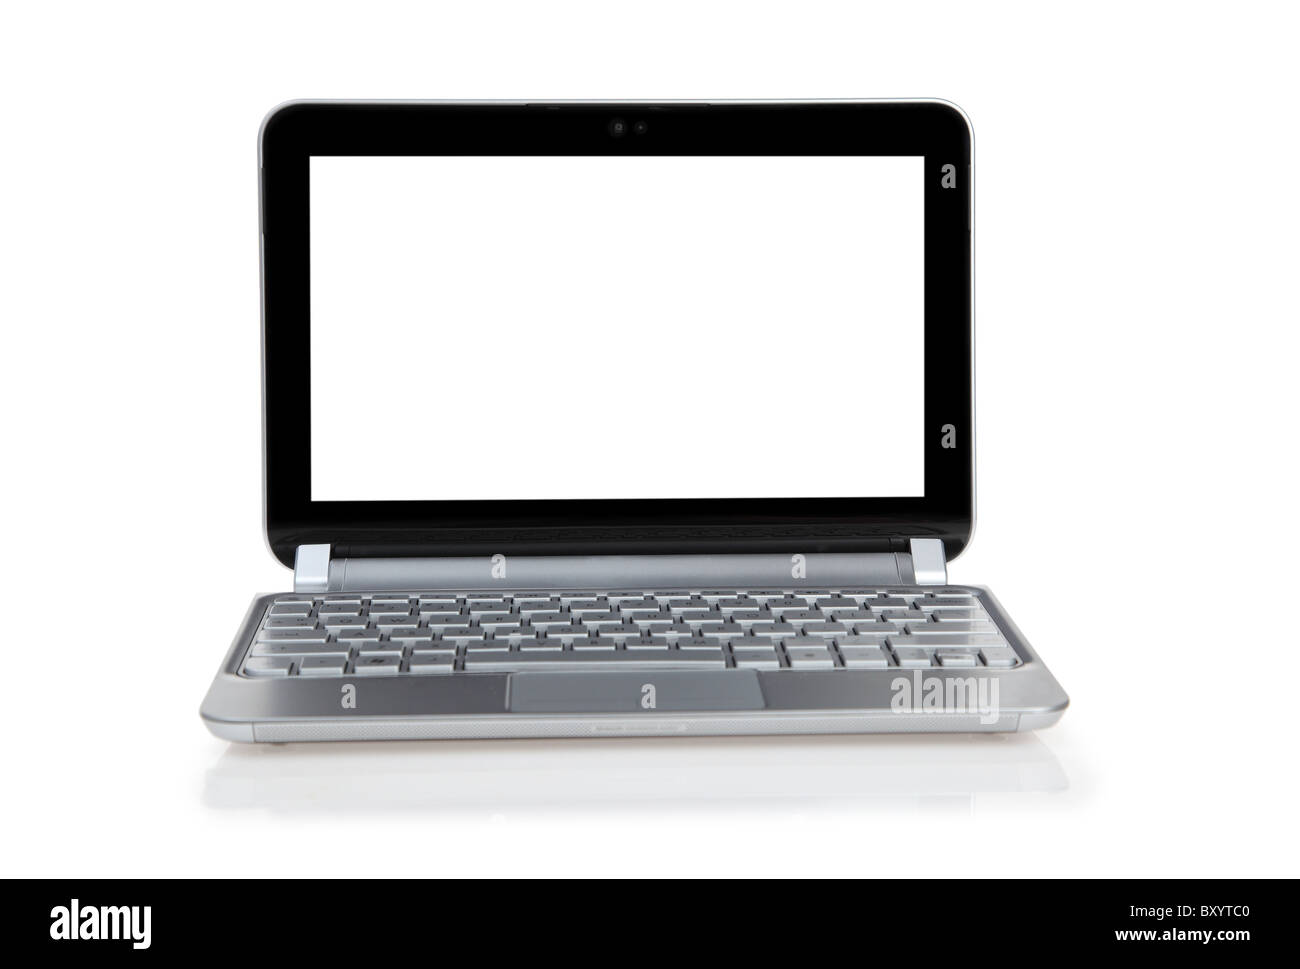 Laptop computer on white background - Stock Image